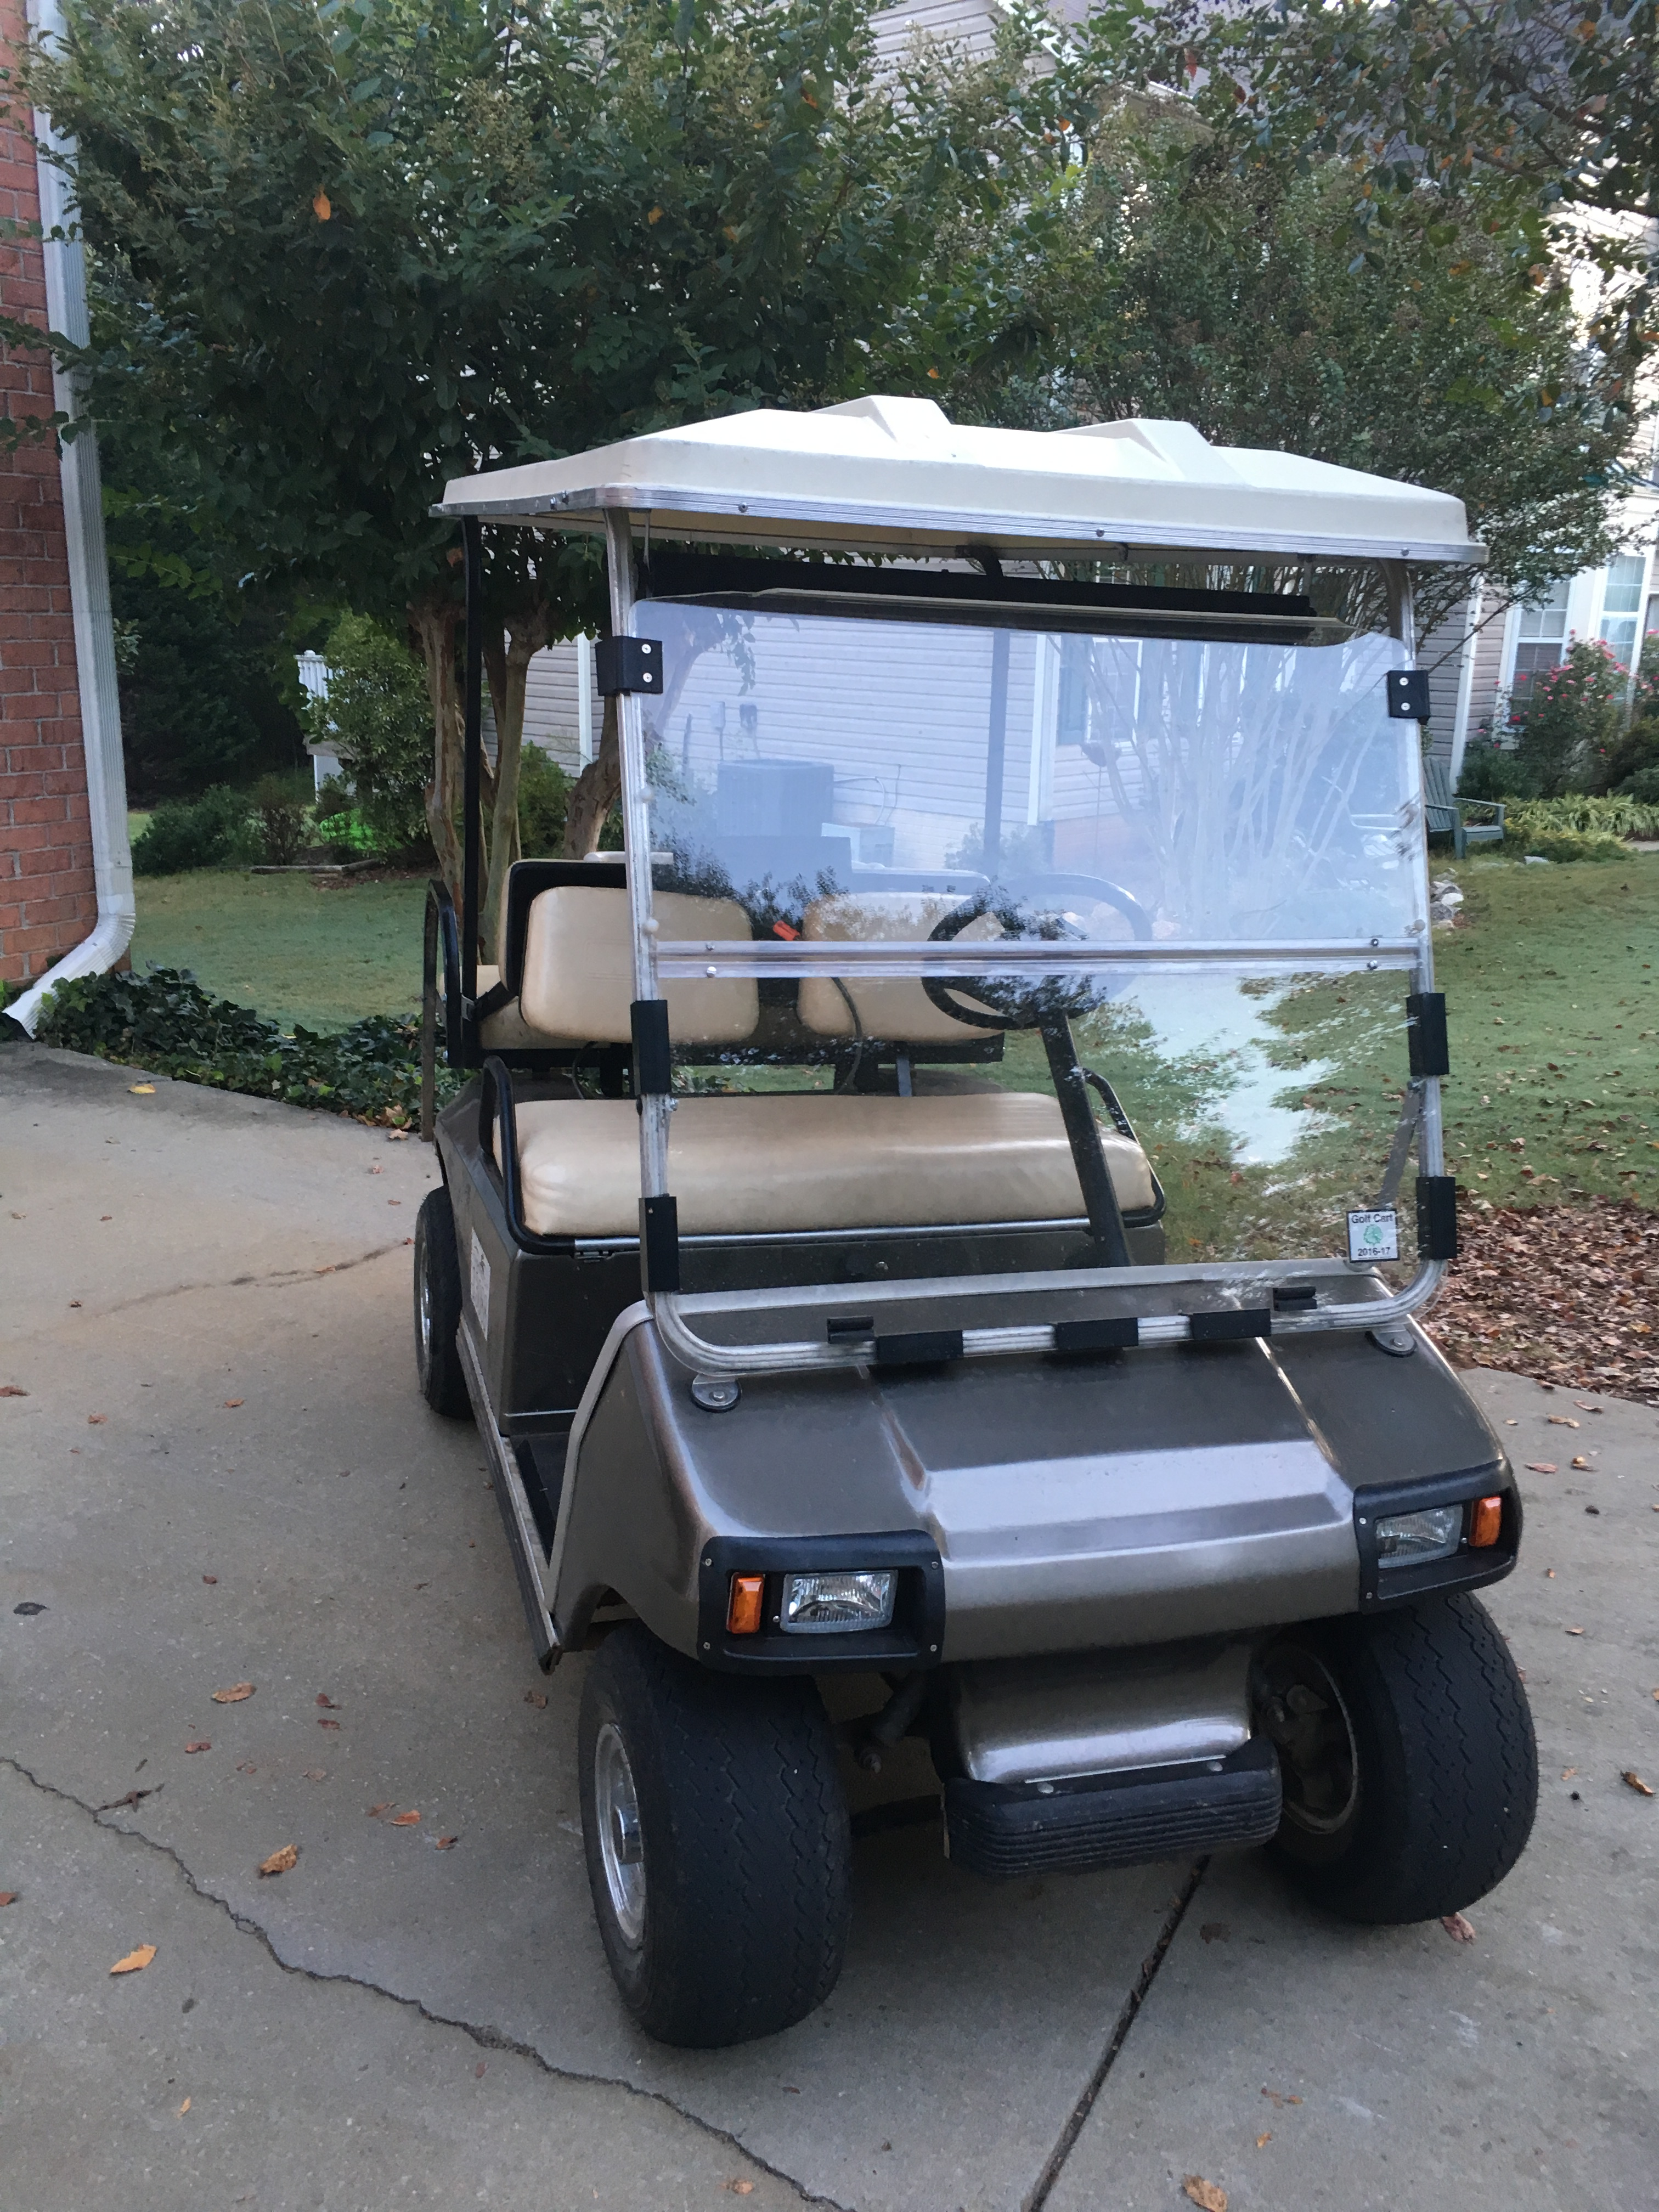 2016 Summer Project – 1992 Gas Club Car build | HBR on adult golf carts, tiny golf carts, older golf carts, old golf carts, damaged golf carts, perfect golf carts, hot golf carts, vintage golf carts, japanese golf carts, weird golf carts,